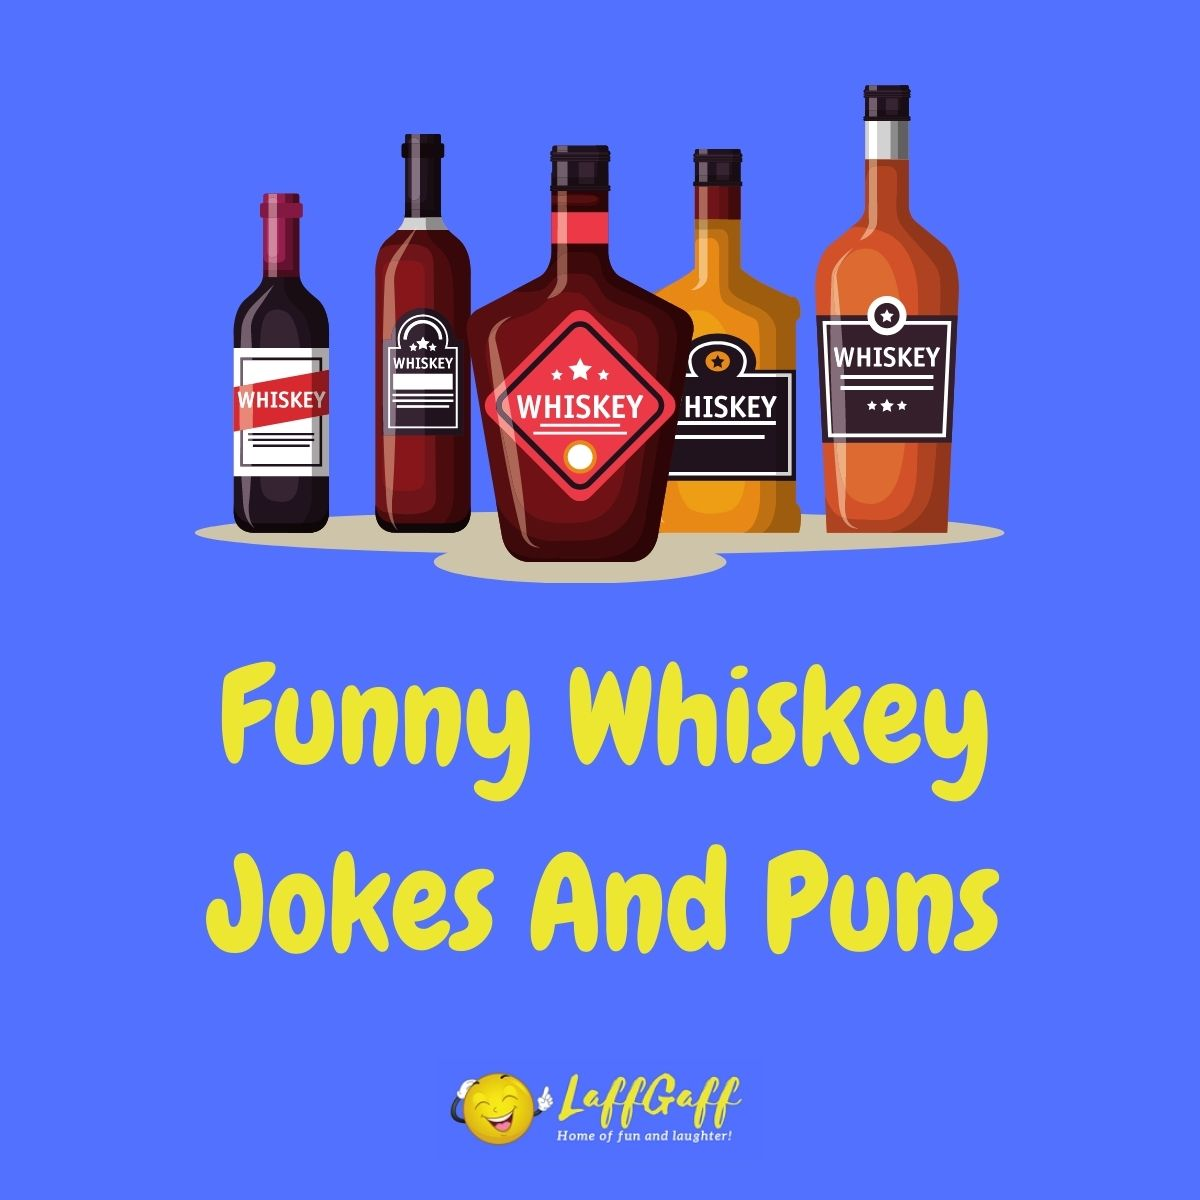 Featured image for a page of funny whiskey jokes and puns.